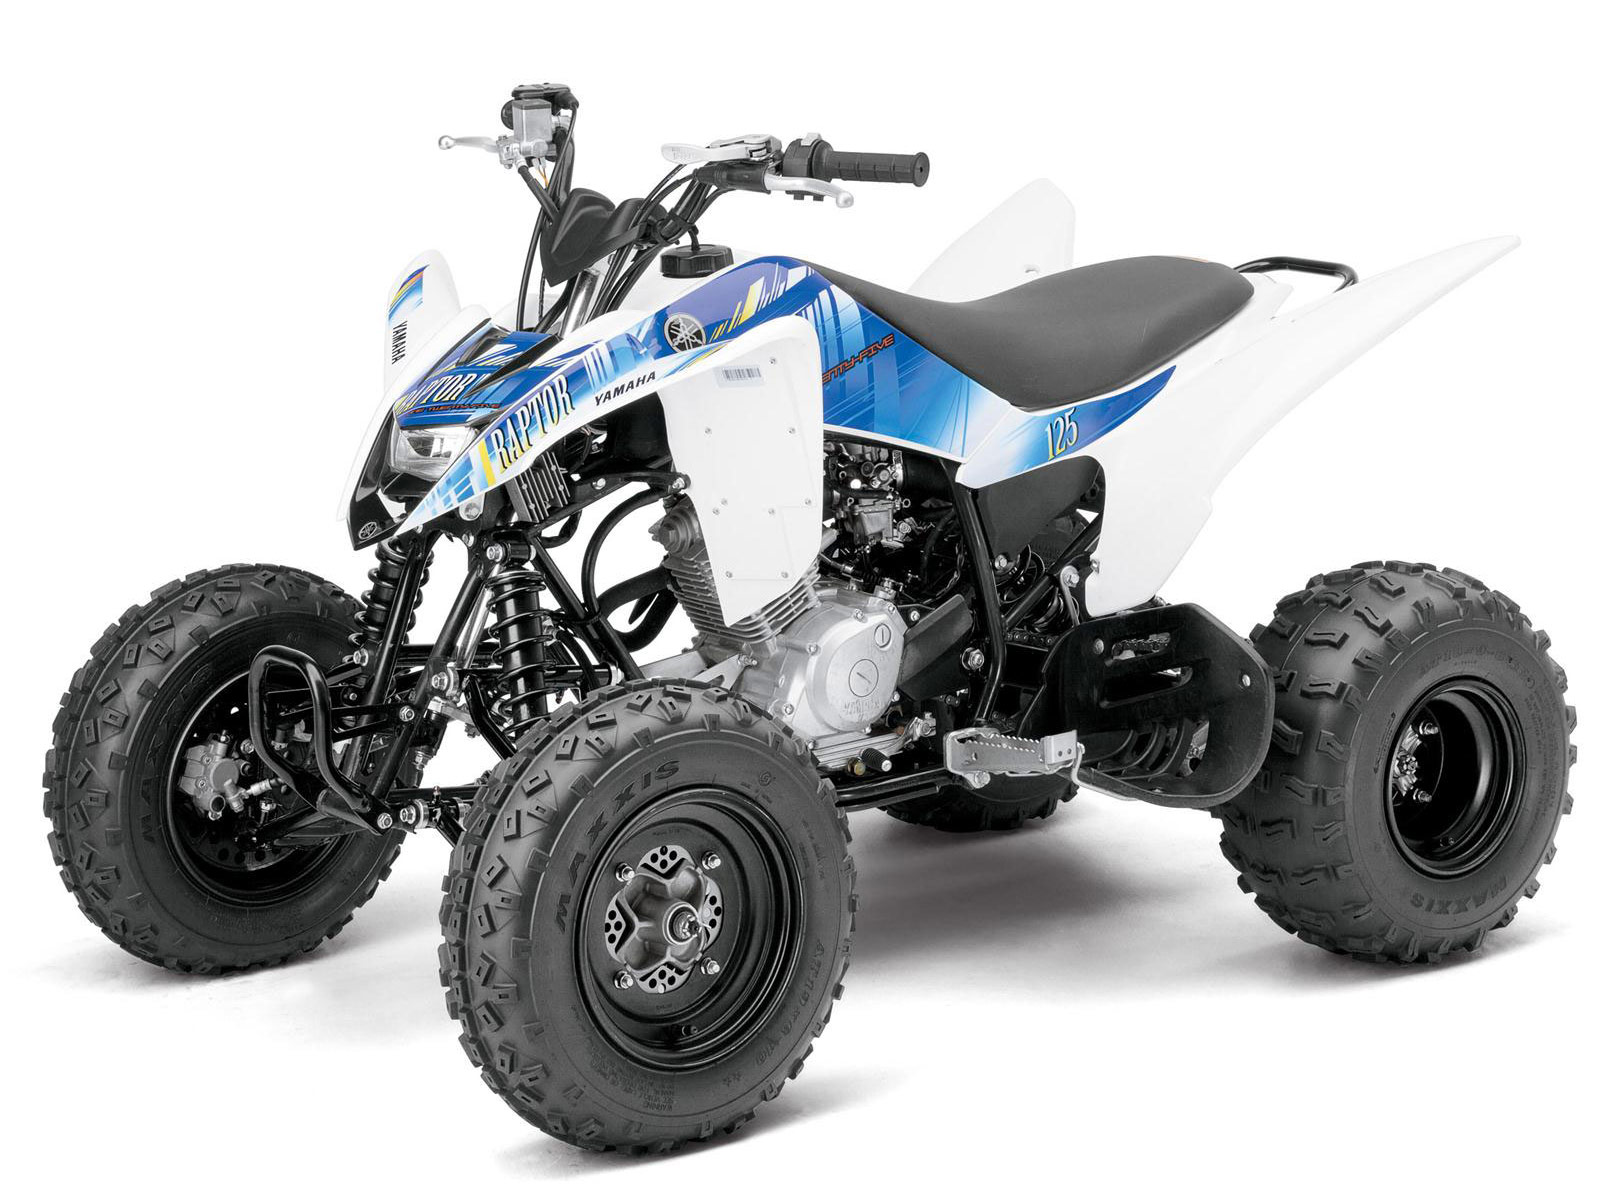 2013 Yamaha Atv Wiring Diagrams Another Blog About Diagram Grizzly 125 Schematic For Yfz450r Pw50